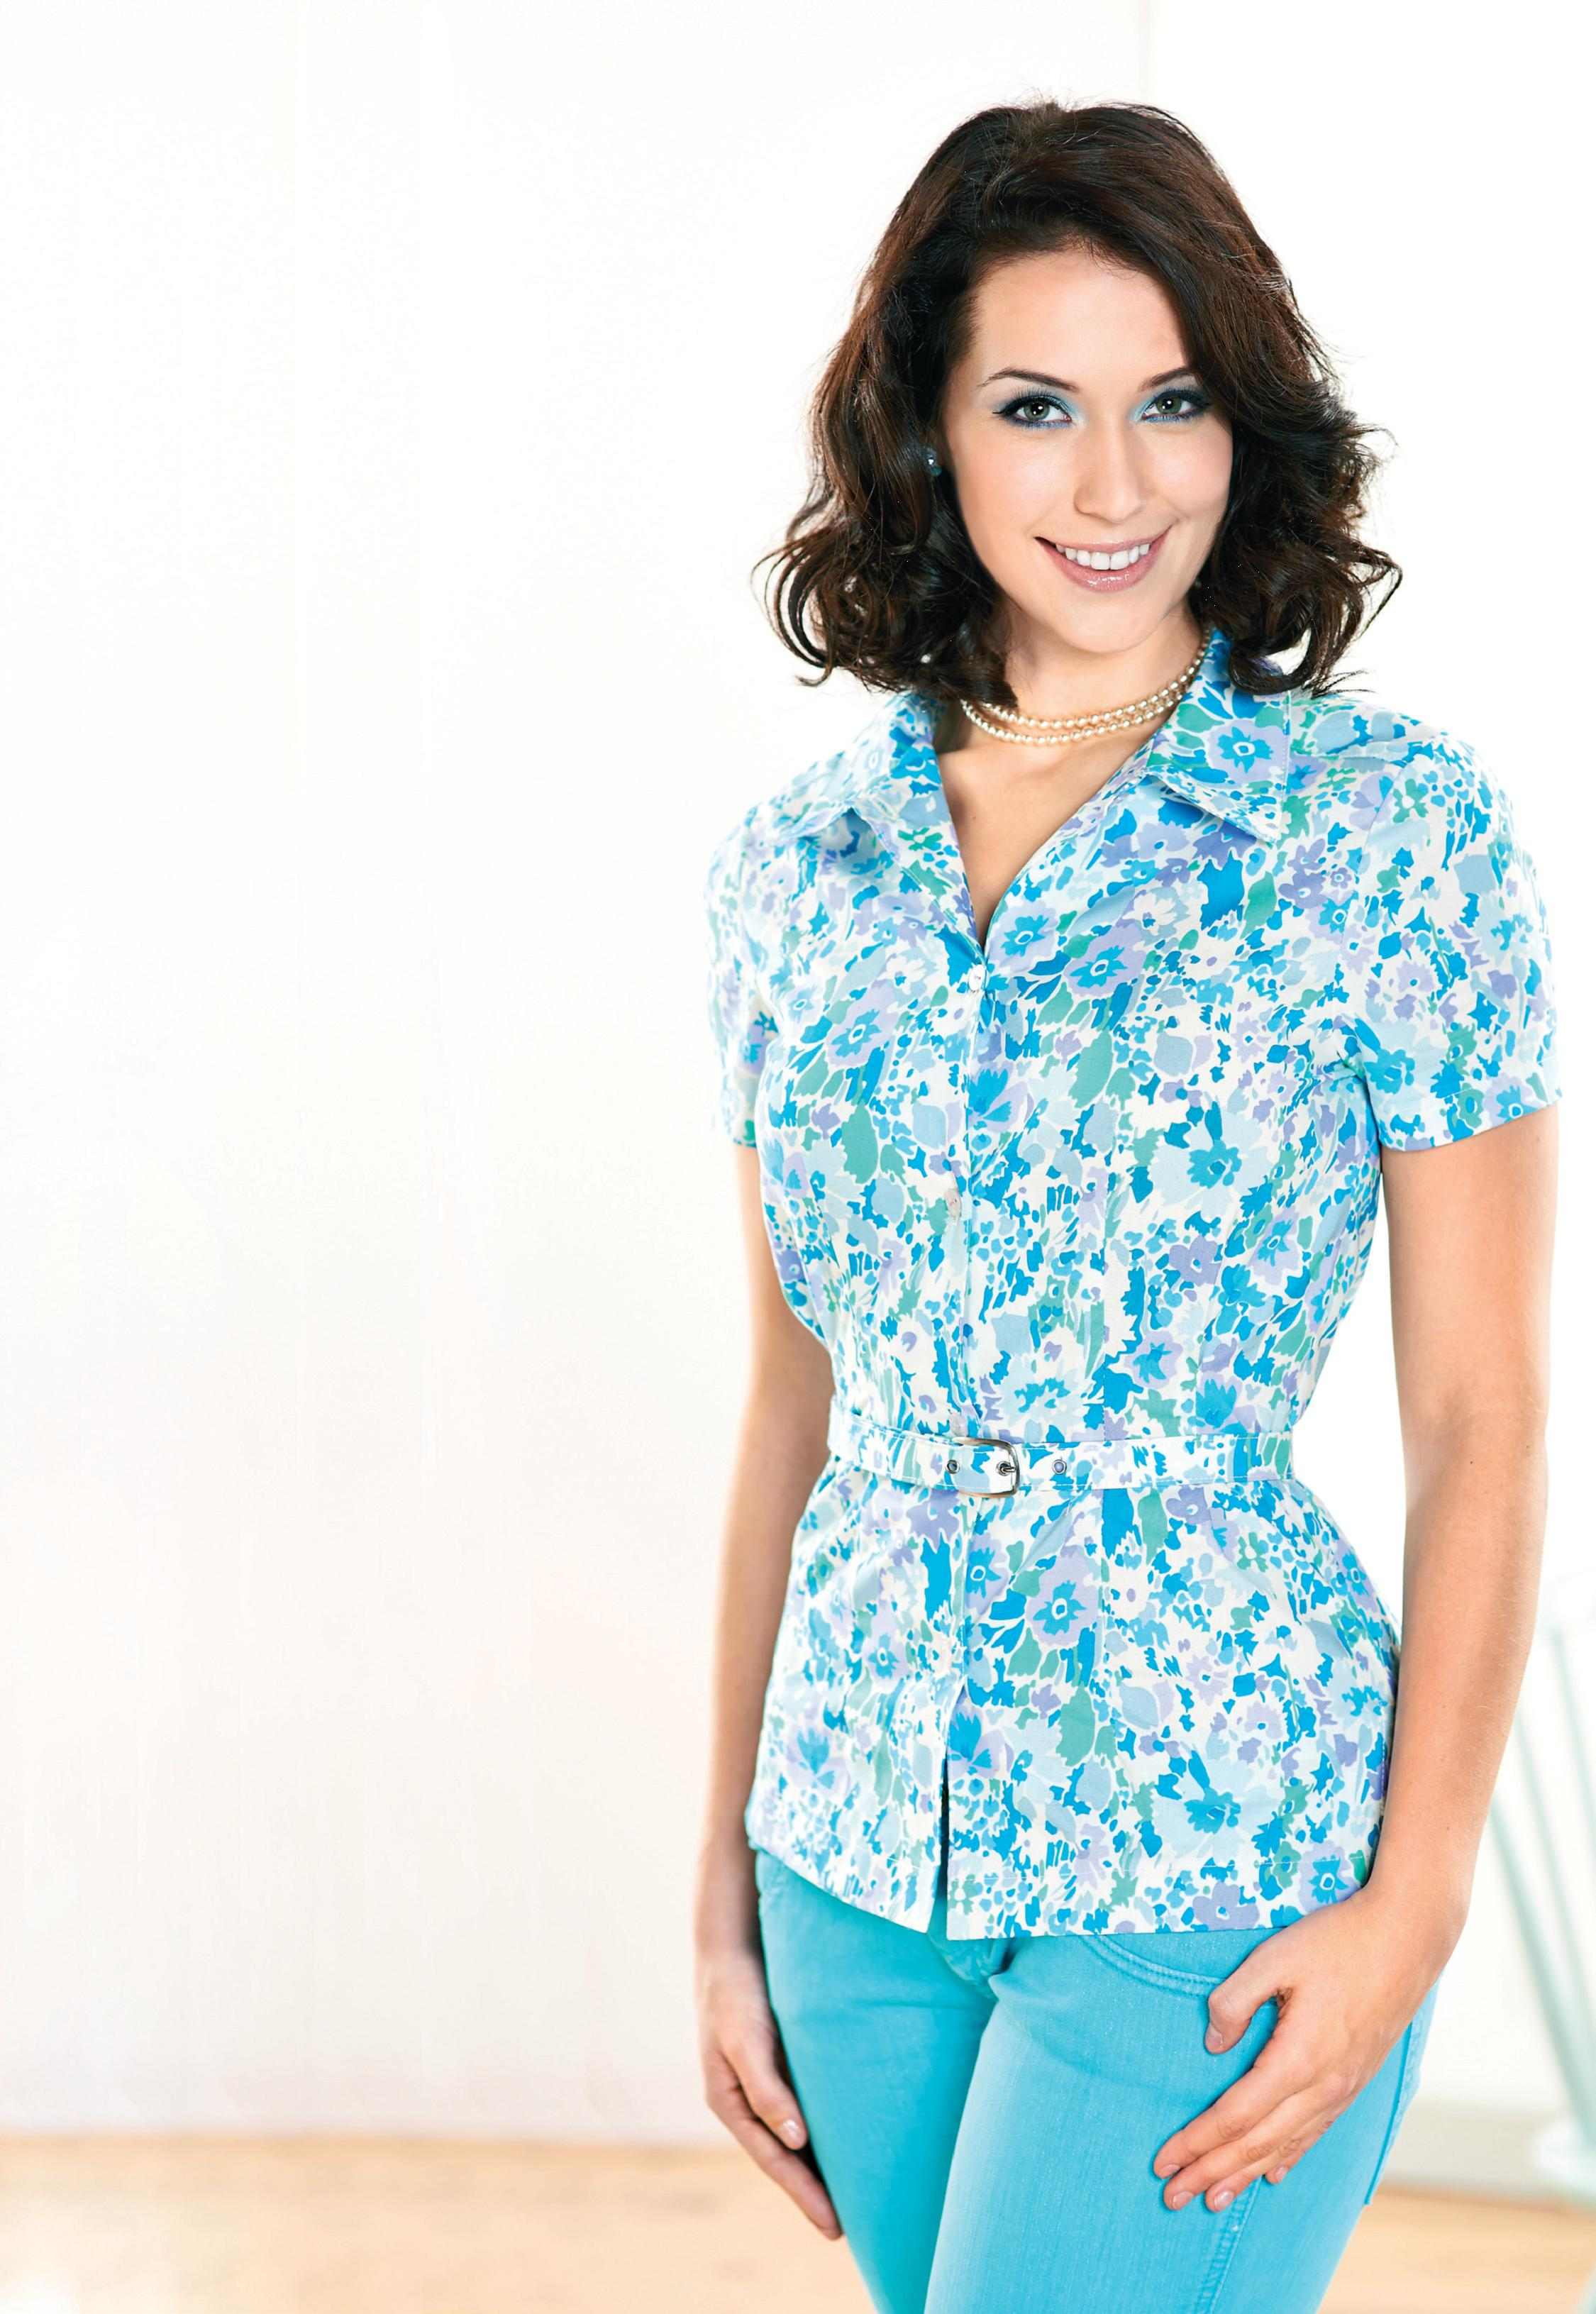 Floral Liberty Print Blouse Free Sewing Patterns Sew